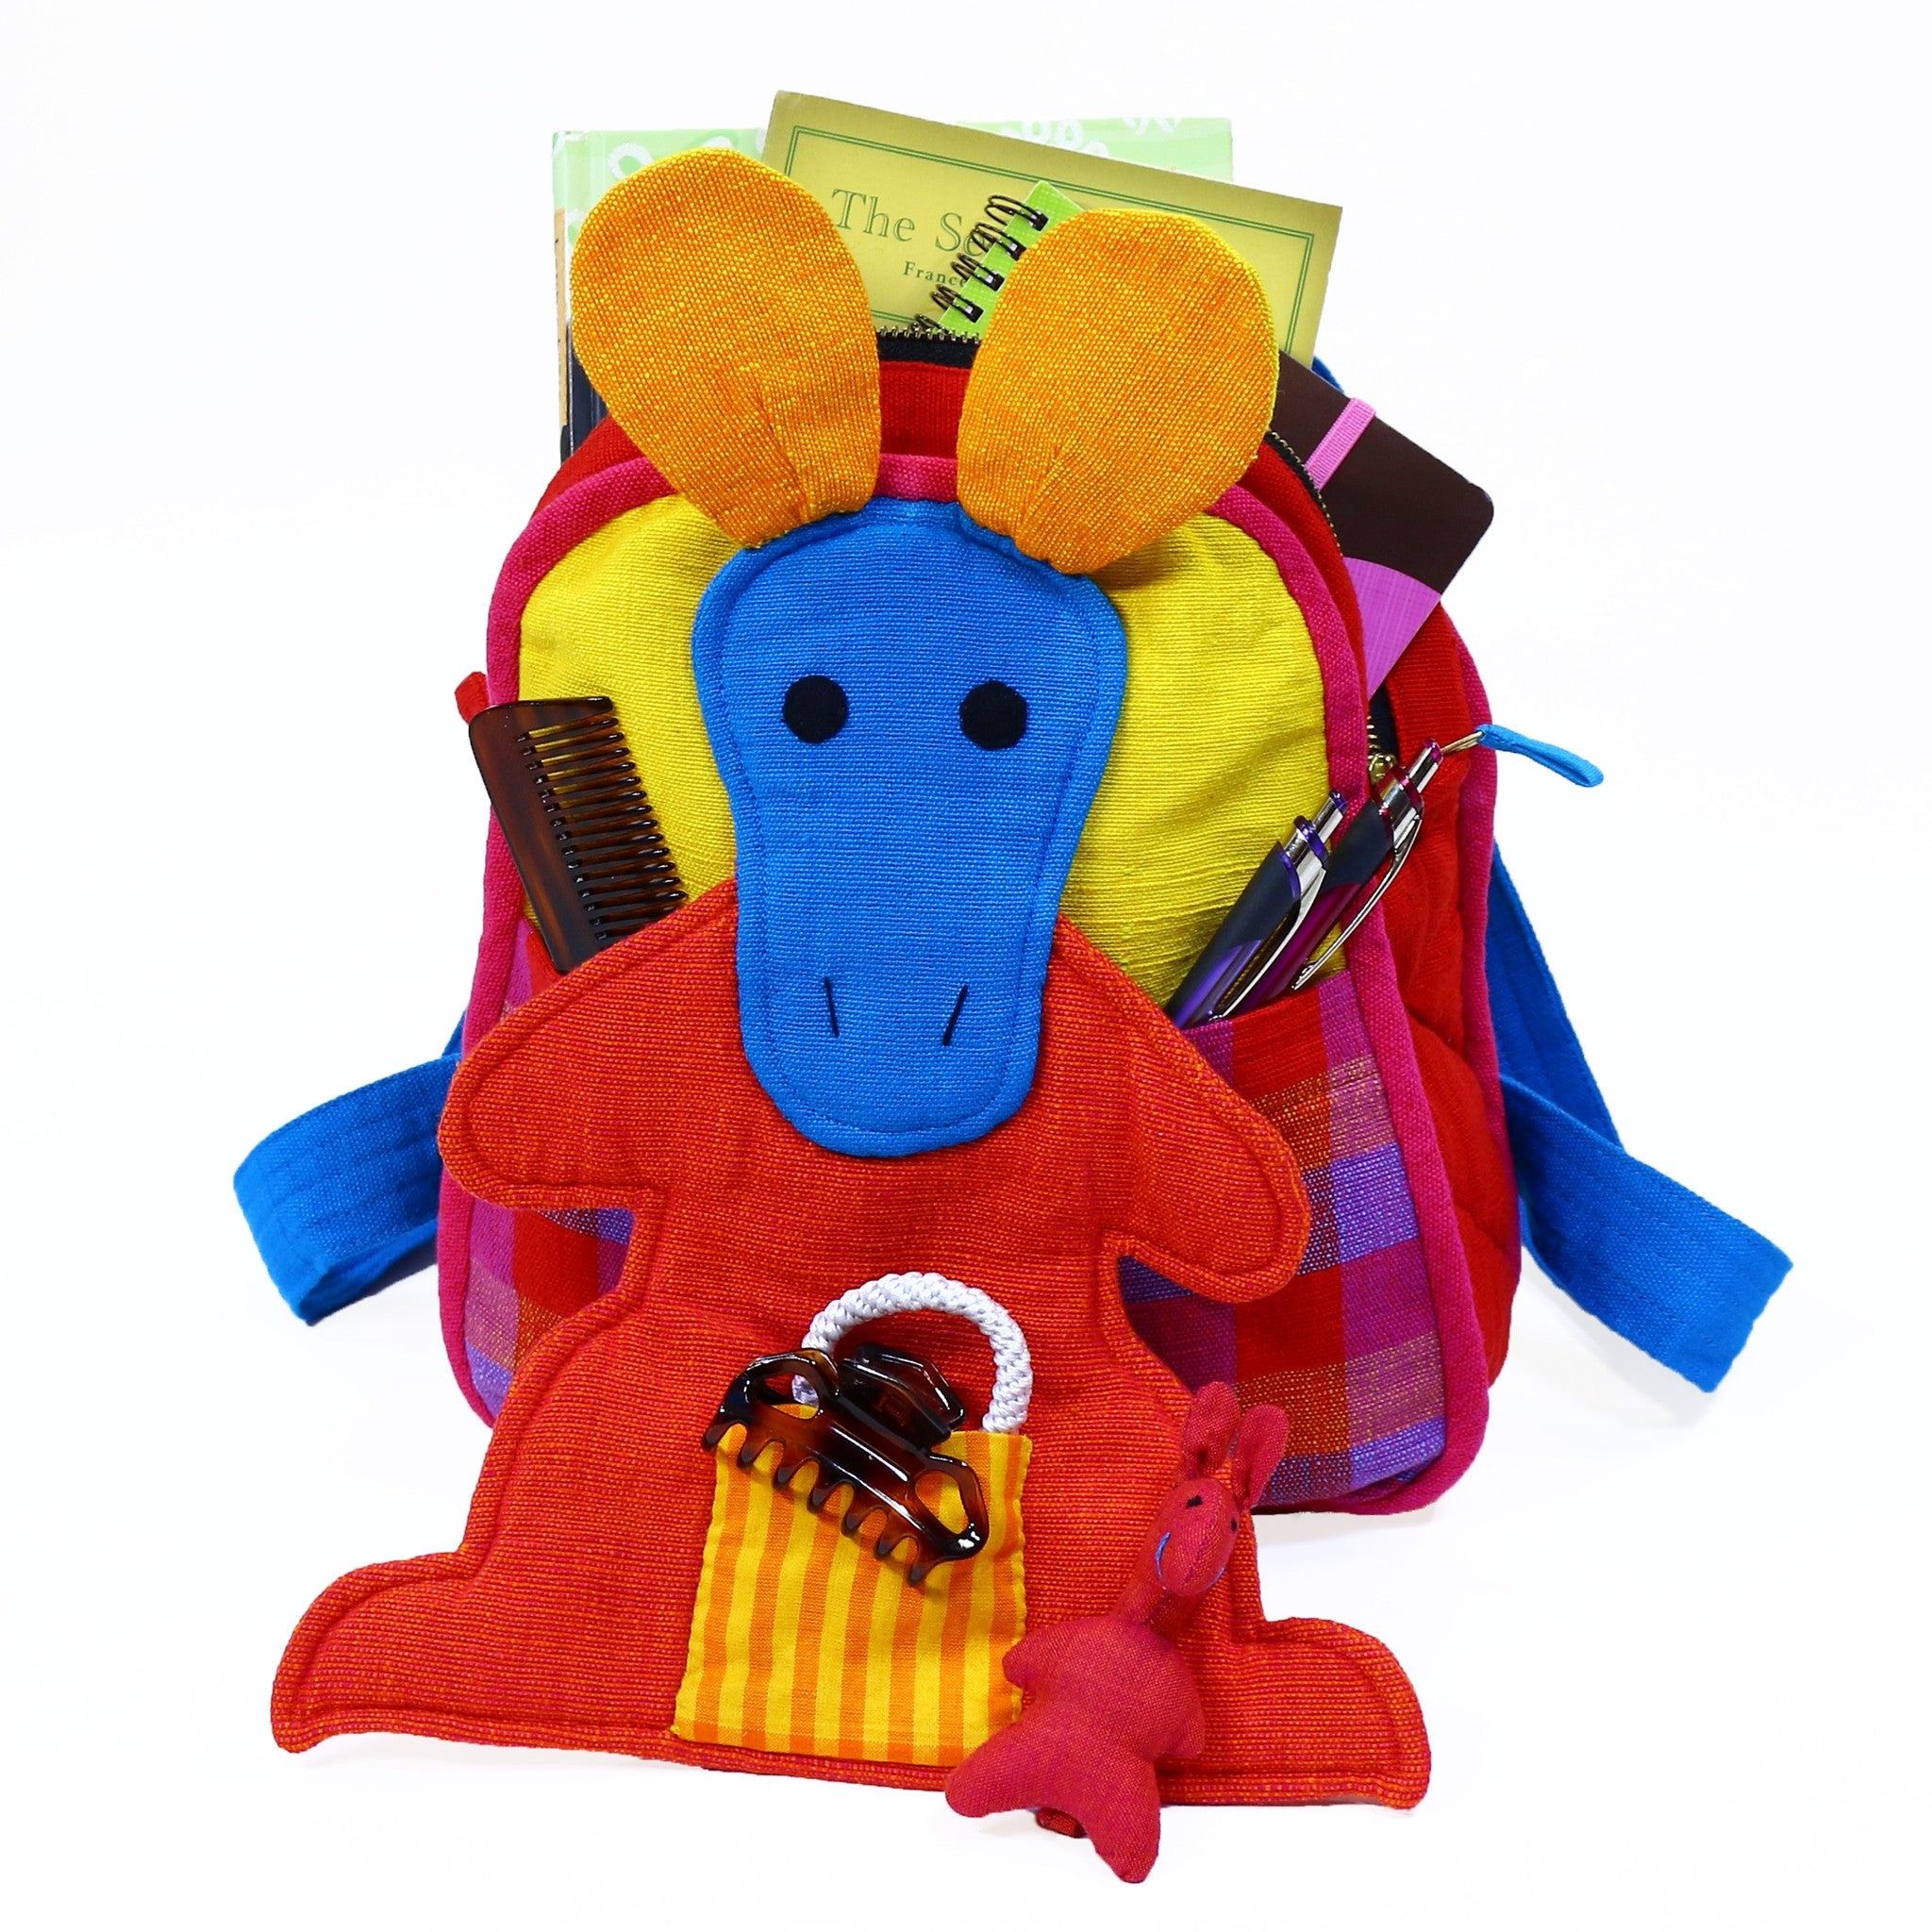 Kangaroo Backpack – very cute and holds a lot!